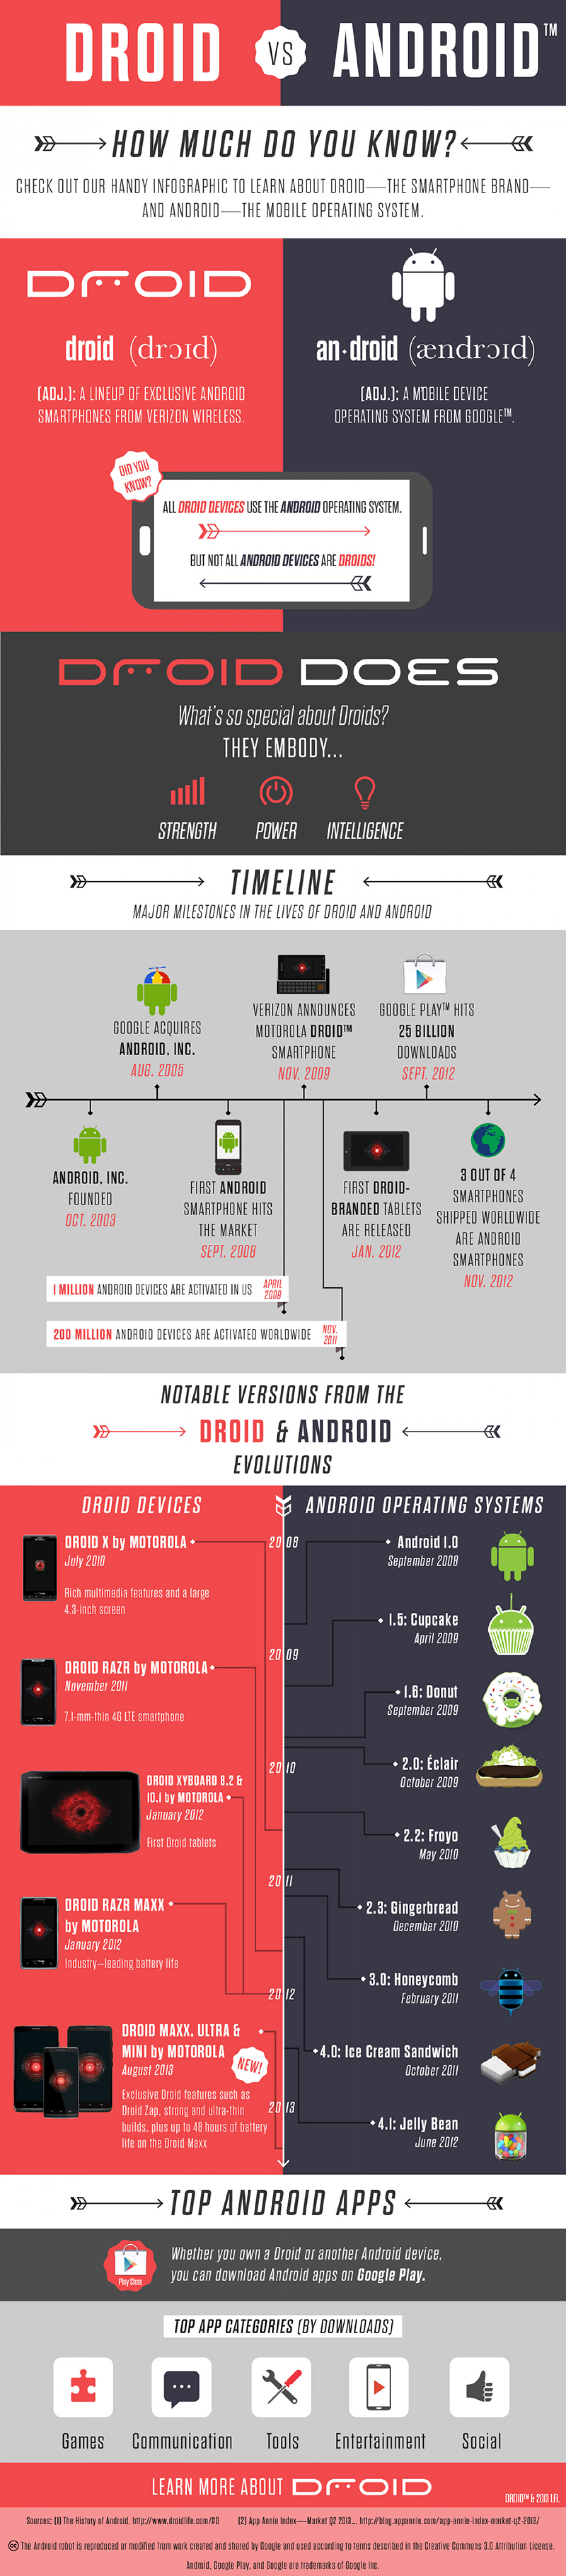 Droid vs. Android: How Much Do You Know? {Infographic} Infographic